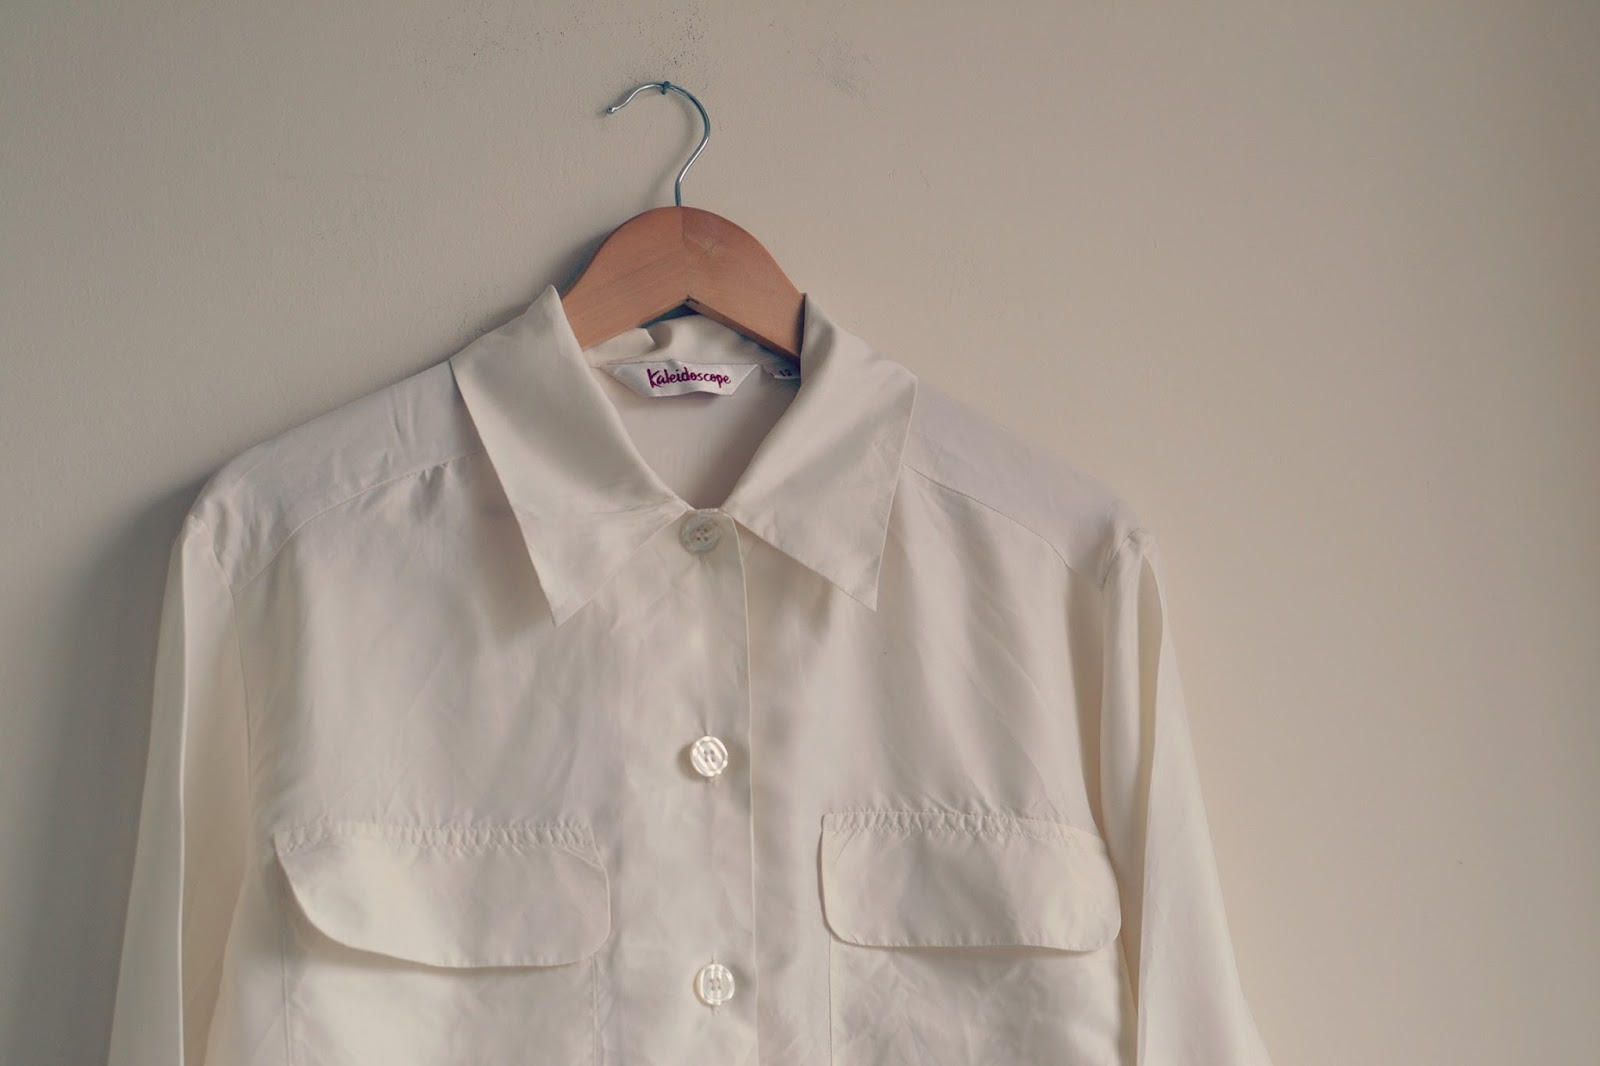 Vintage Silk Shirt Bristol Textile Recyclers